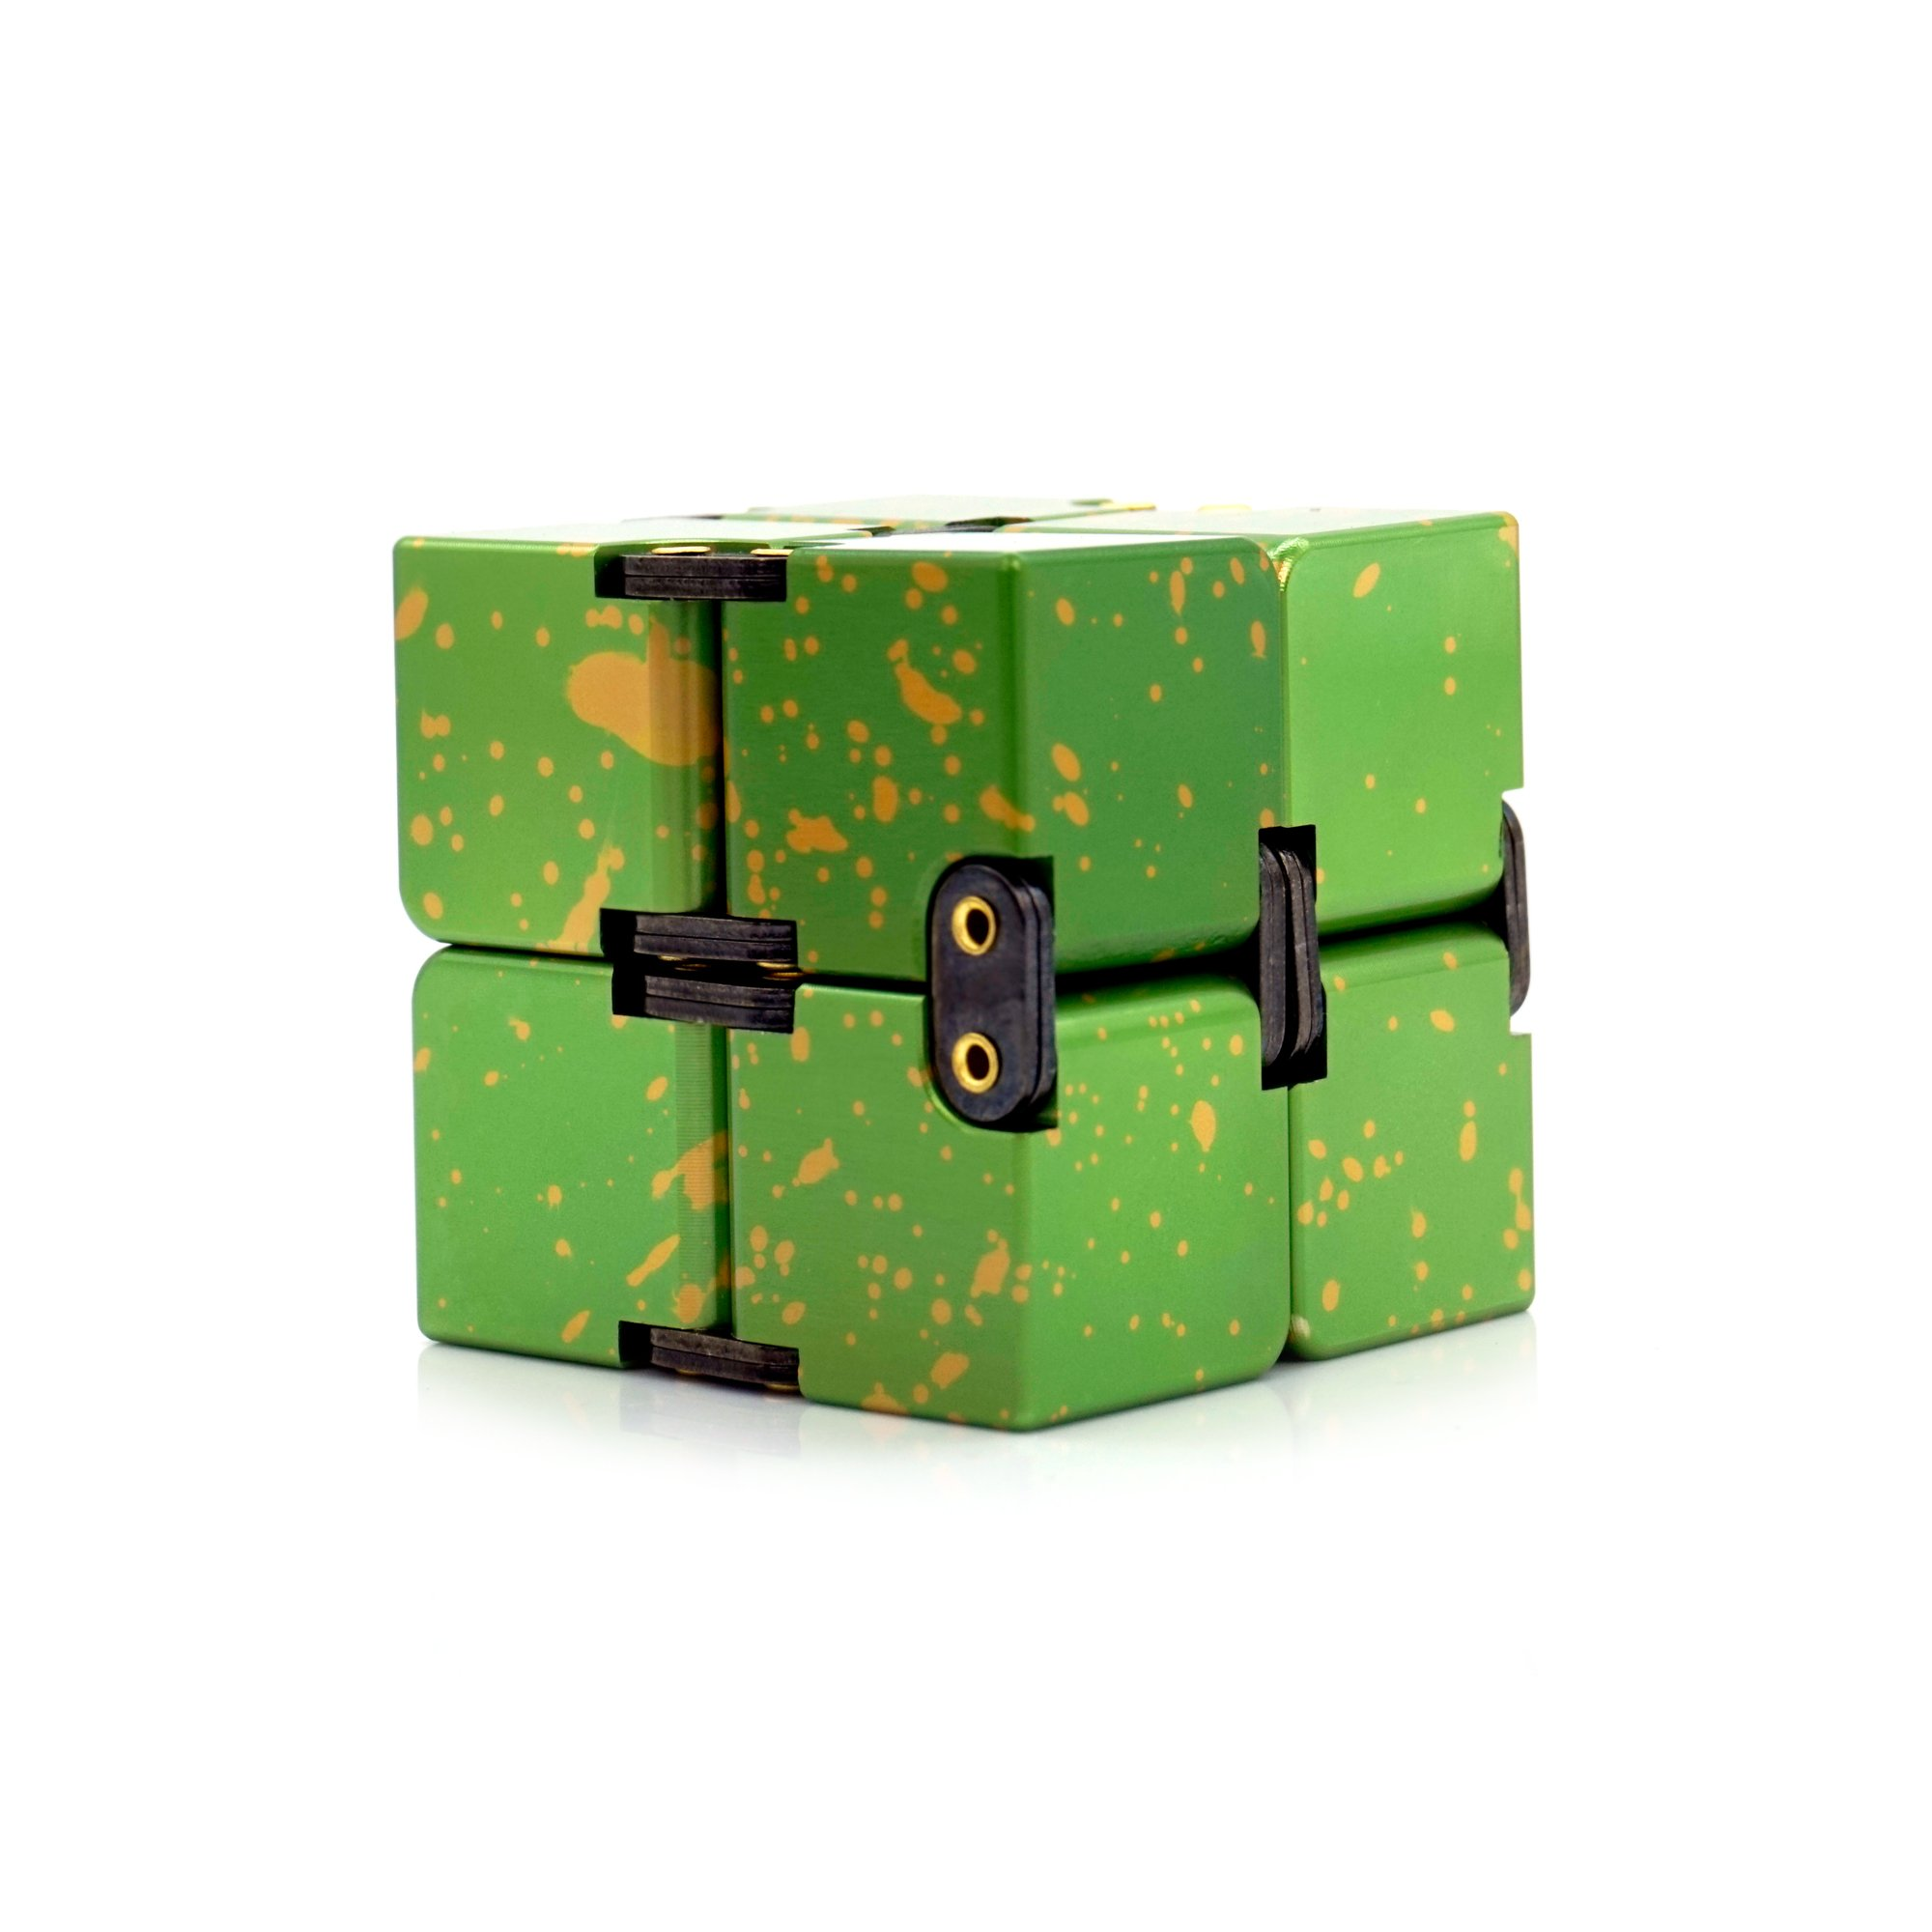 Metal Infinity Cube, Gazeto Durable Aluminum Alloy Decompression Toys, Pressure Reduction Educational Toys Stress Relief Toy Games Square Cube for Adult and Children, Sky Type, Green